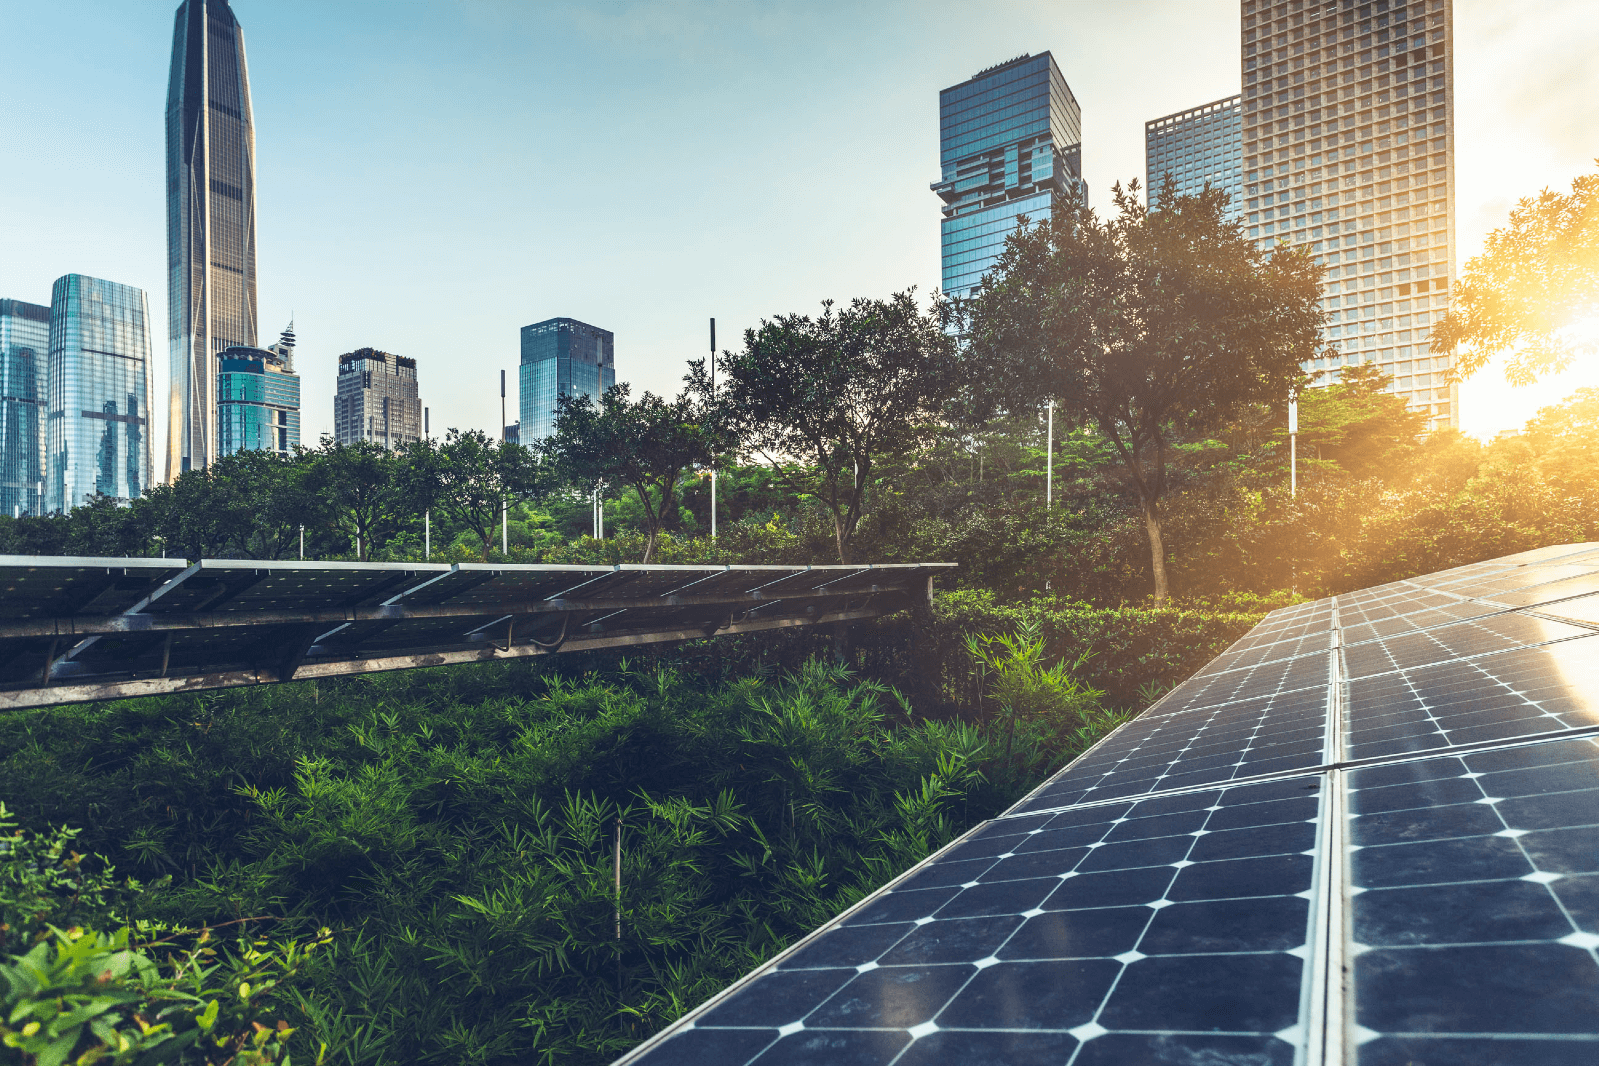 Photo of unknown metropolitan city's skyline, trees, and solar panels during sunset